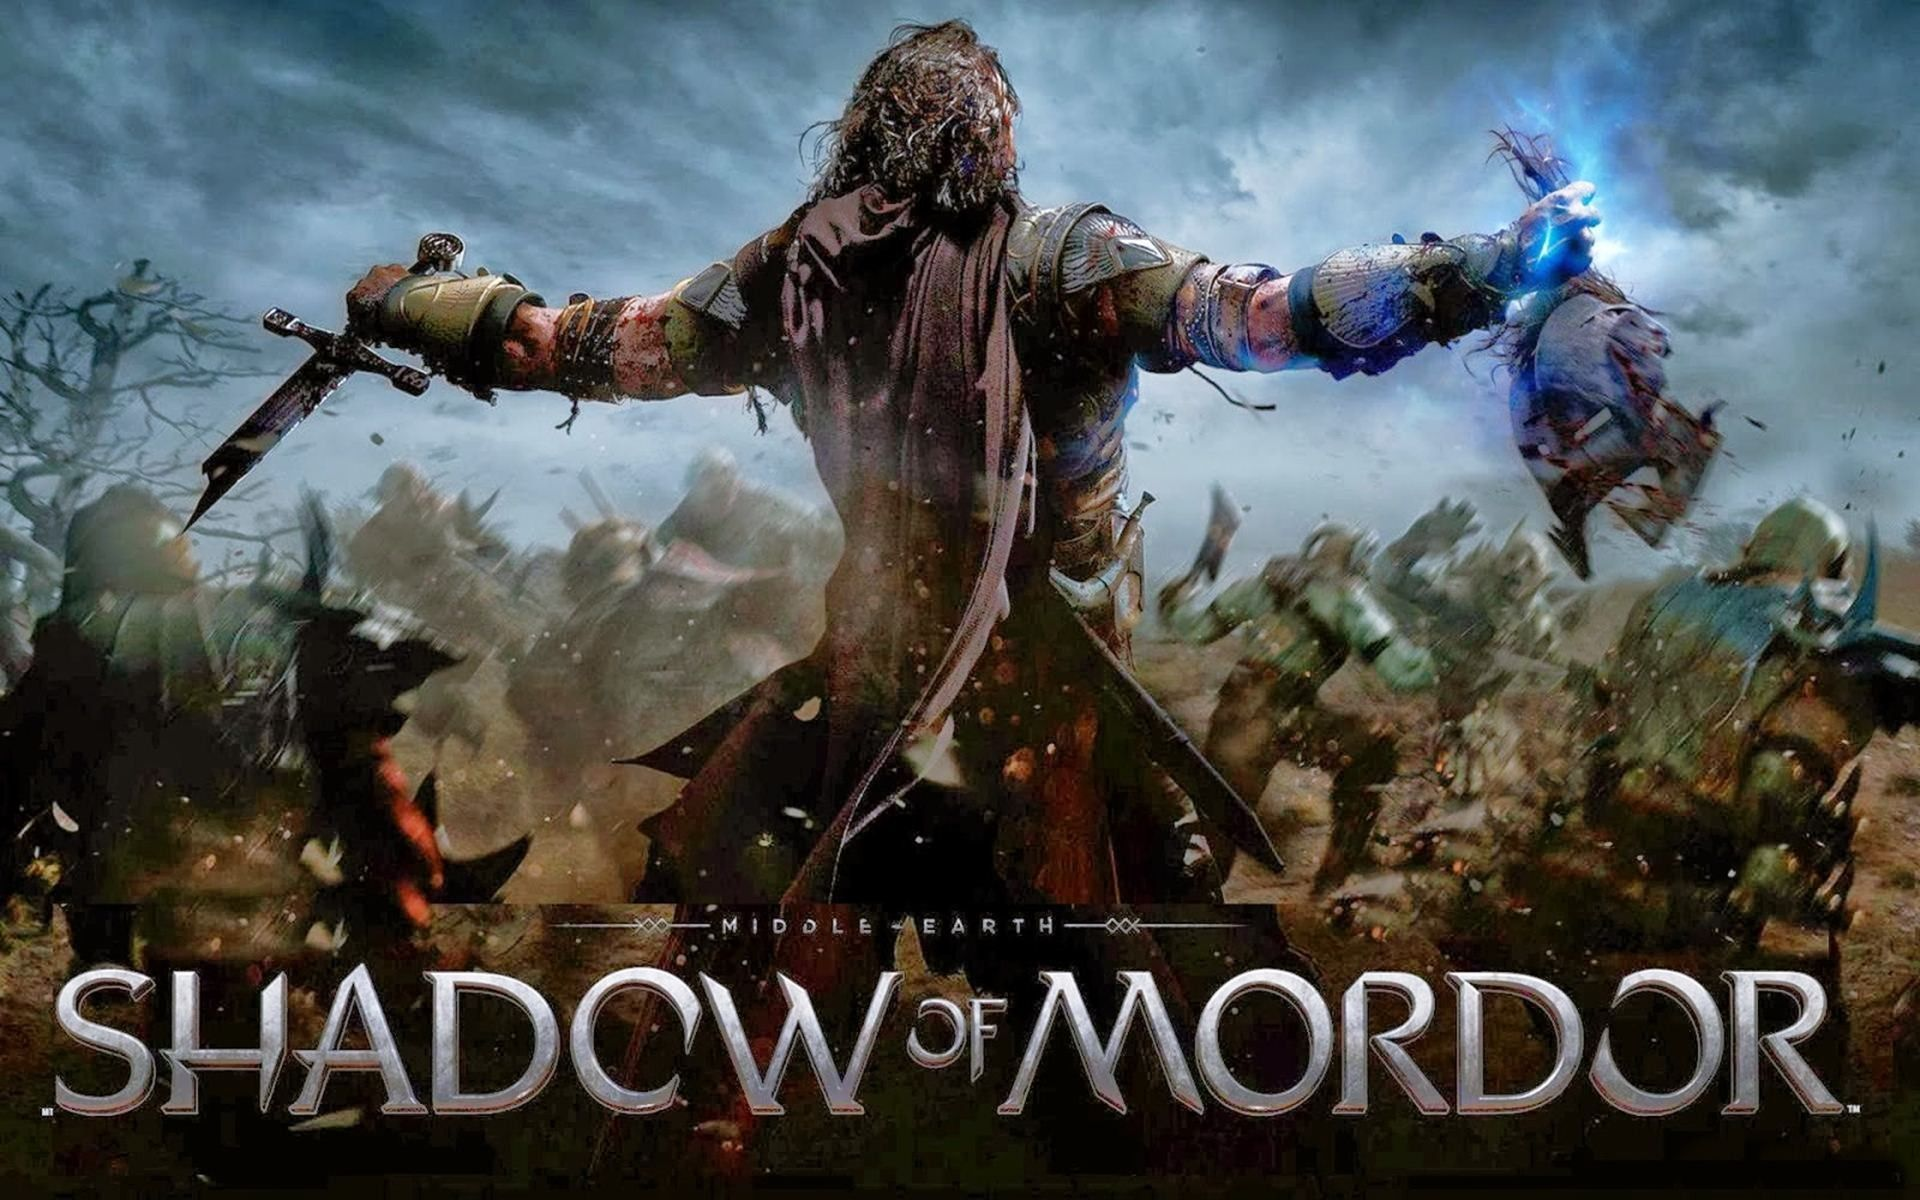 Middle-earth: Shadow of War CD Key PC Game For Free Download